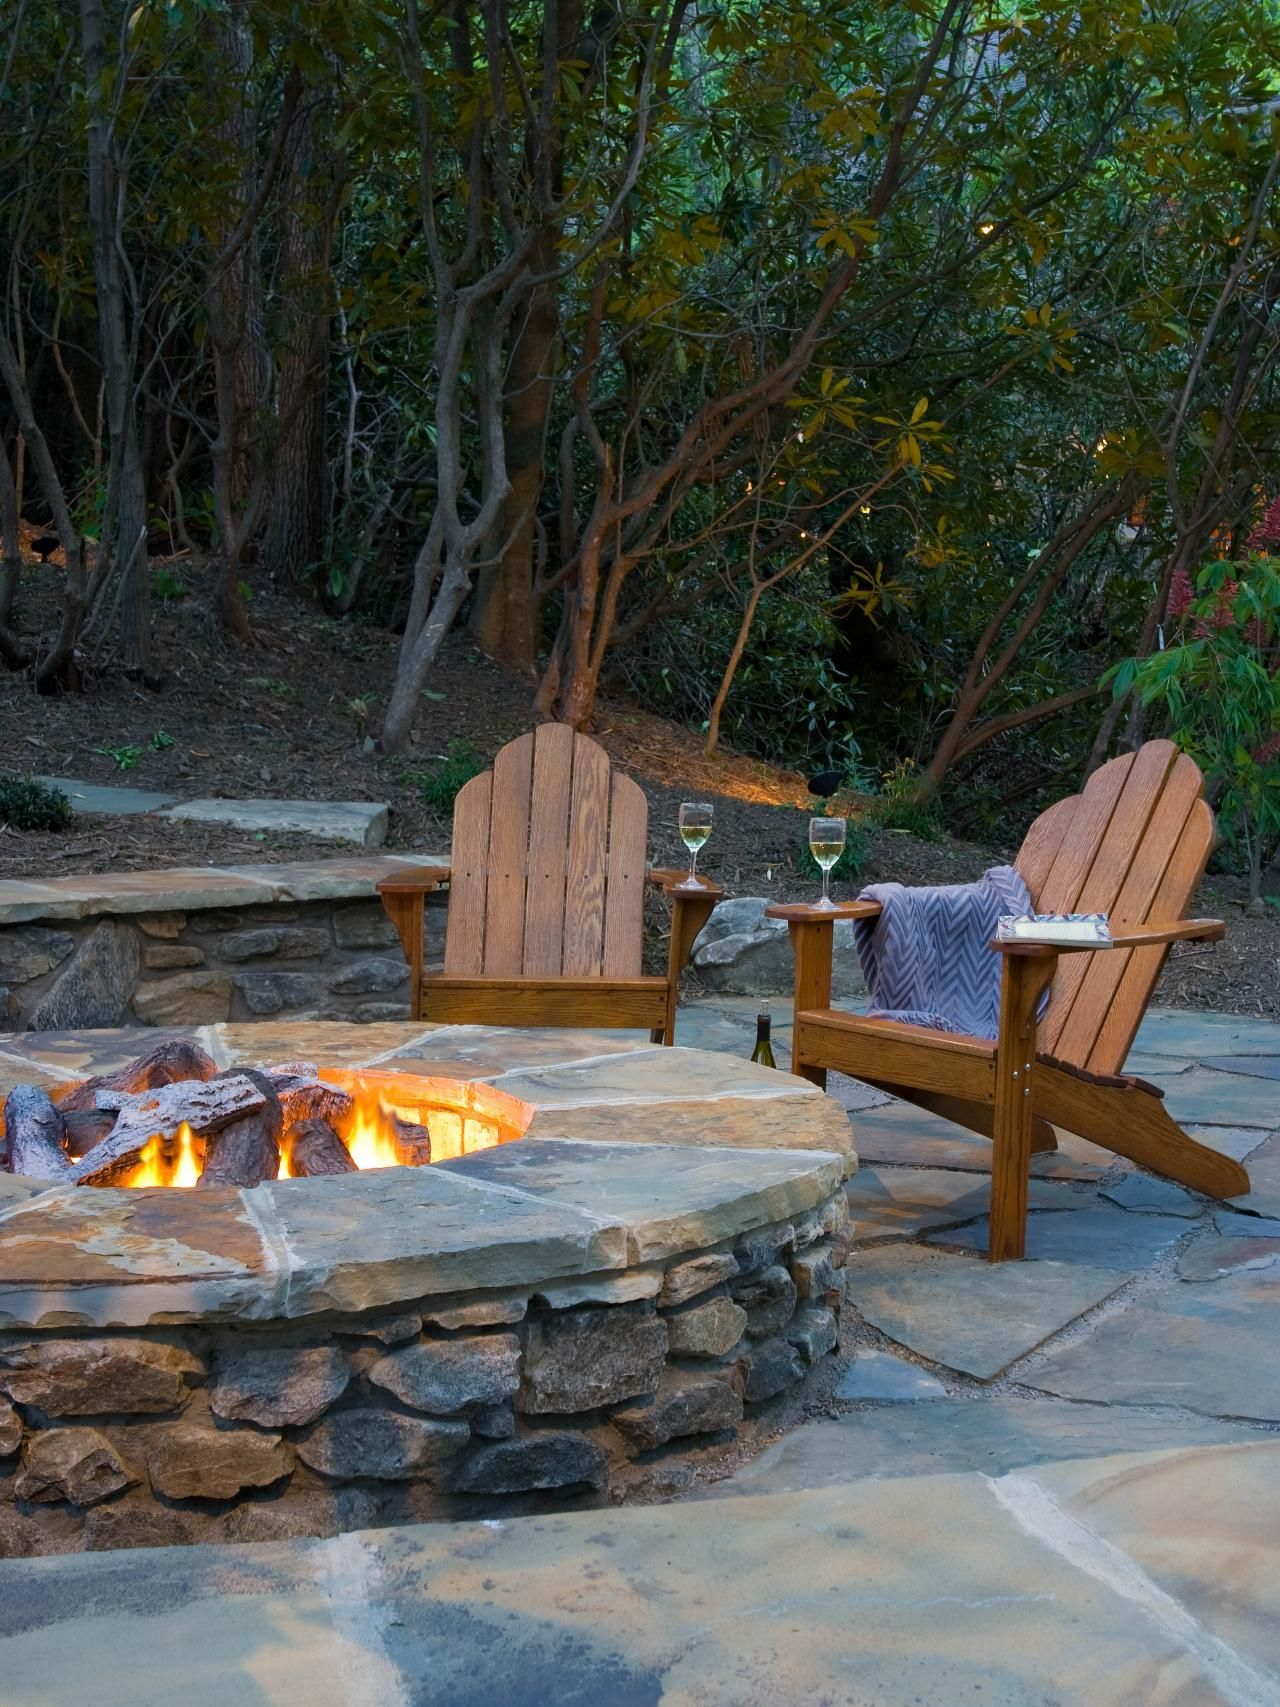 Outdoor Fire Pits and Fire Pit Safety | Fire pit patio ... on Backyard Patio Designs With Fire Pit id=85603